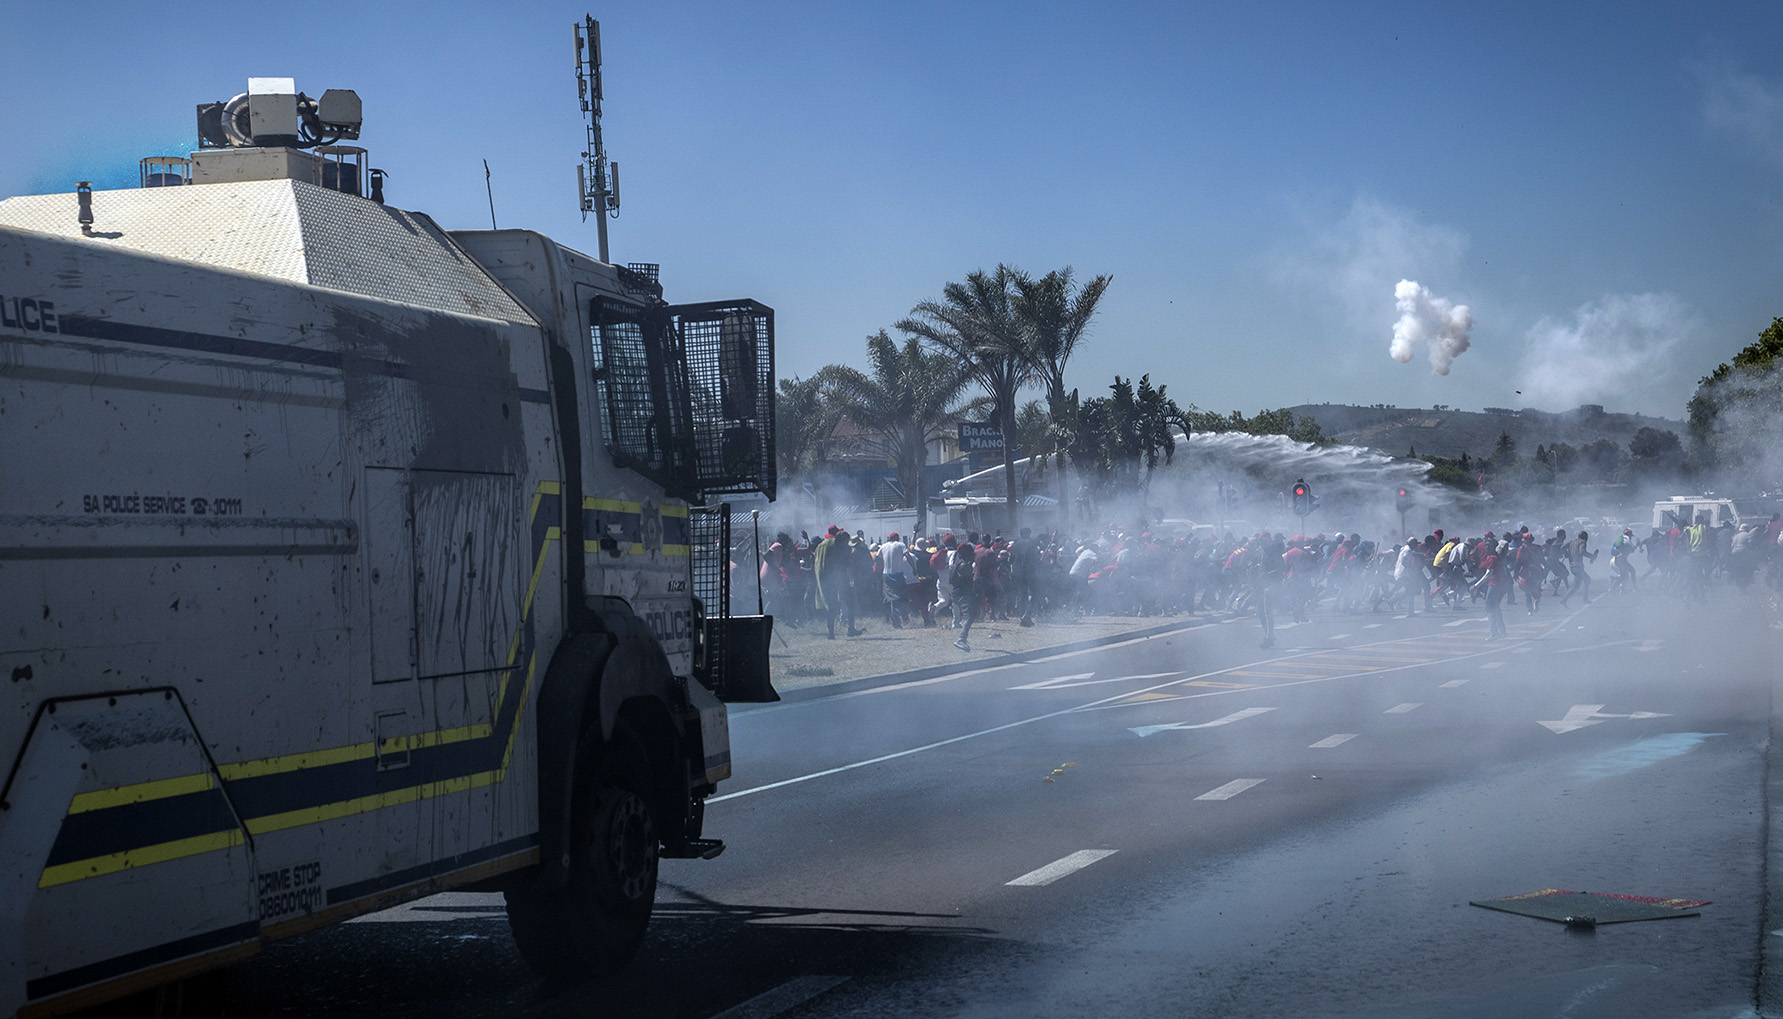 South African police fire teargas at anti-racism protesters